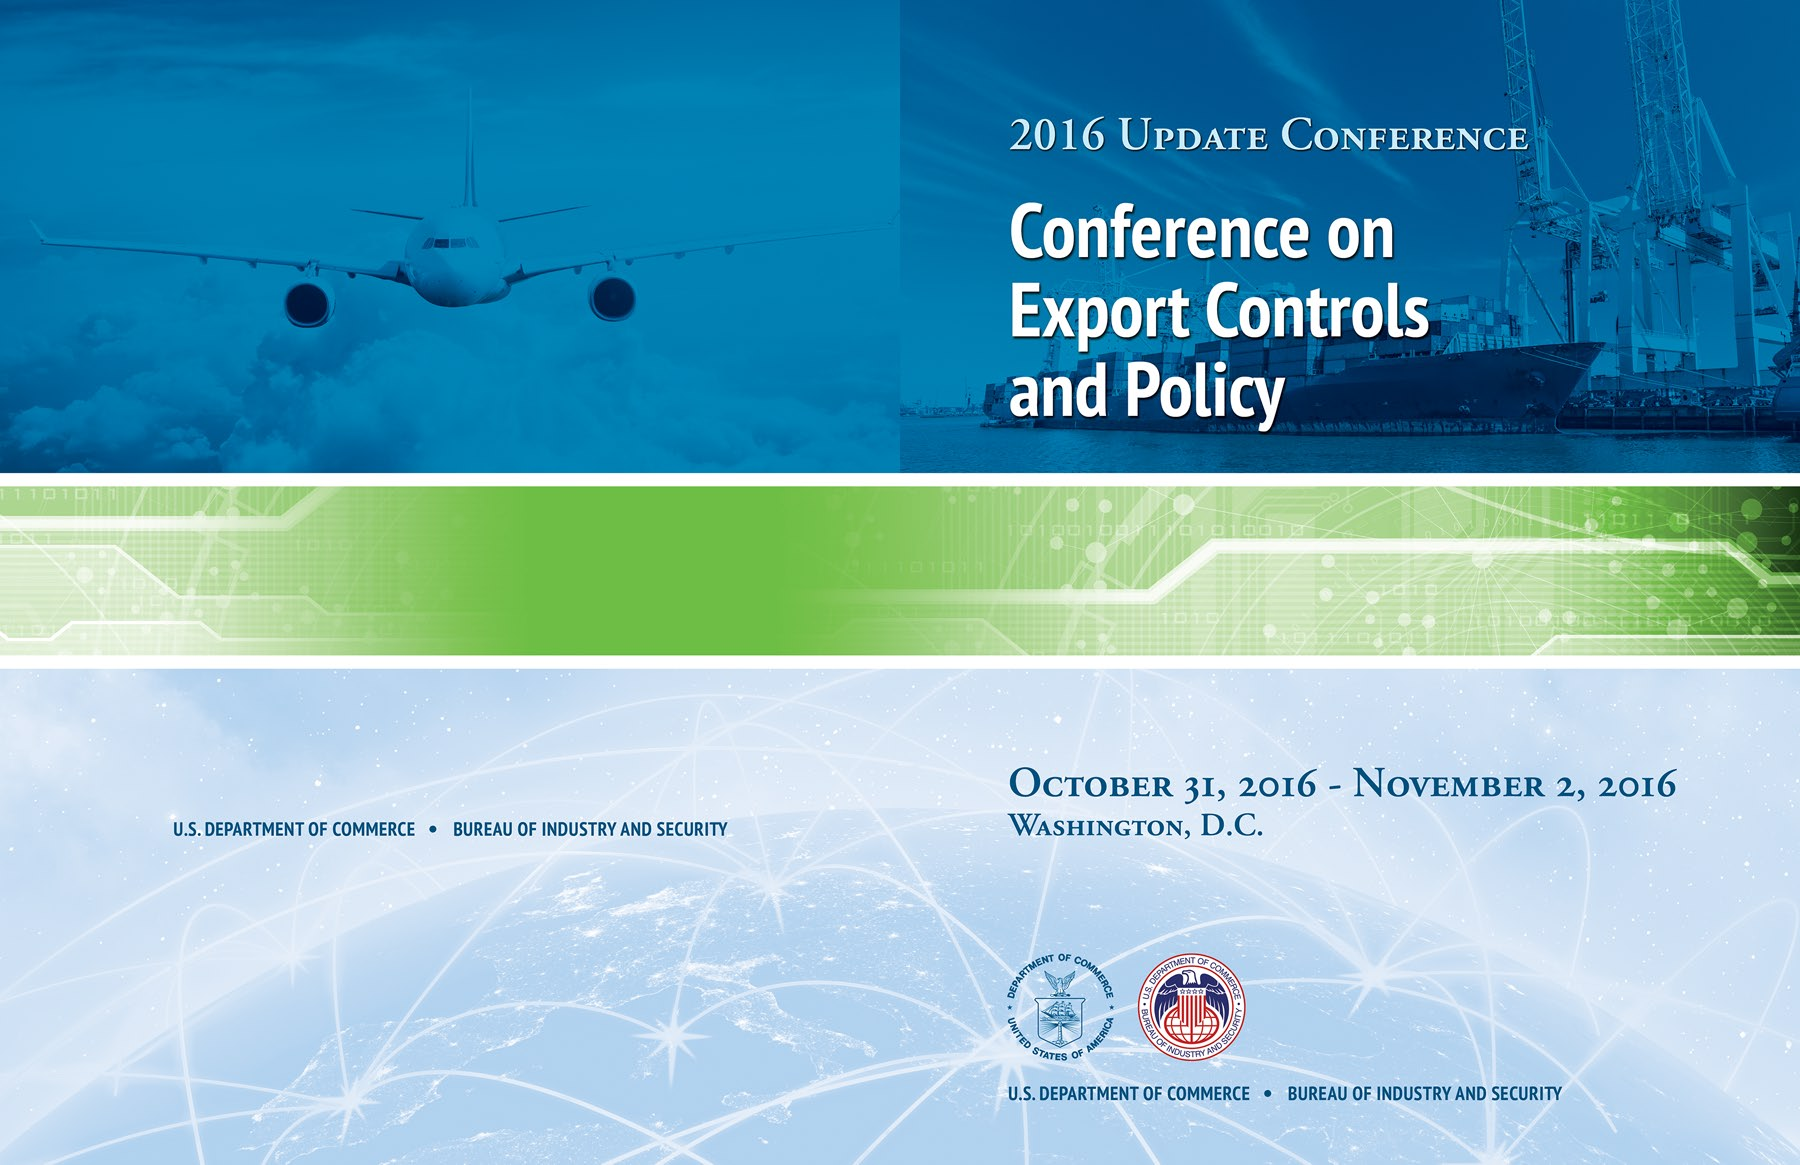 Annual Update Conference 2016